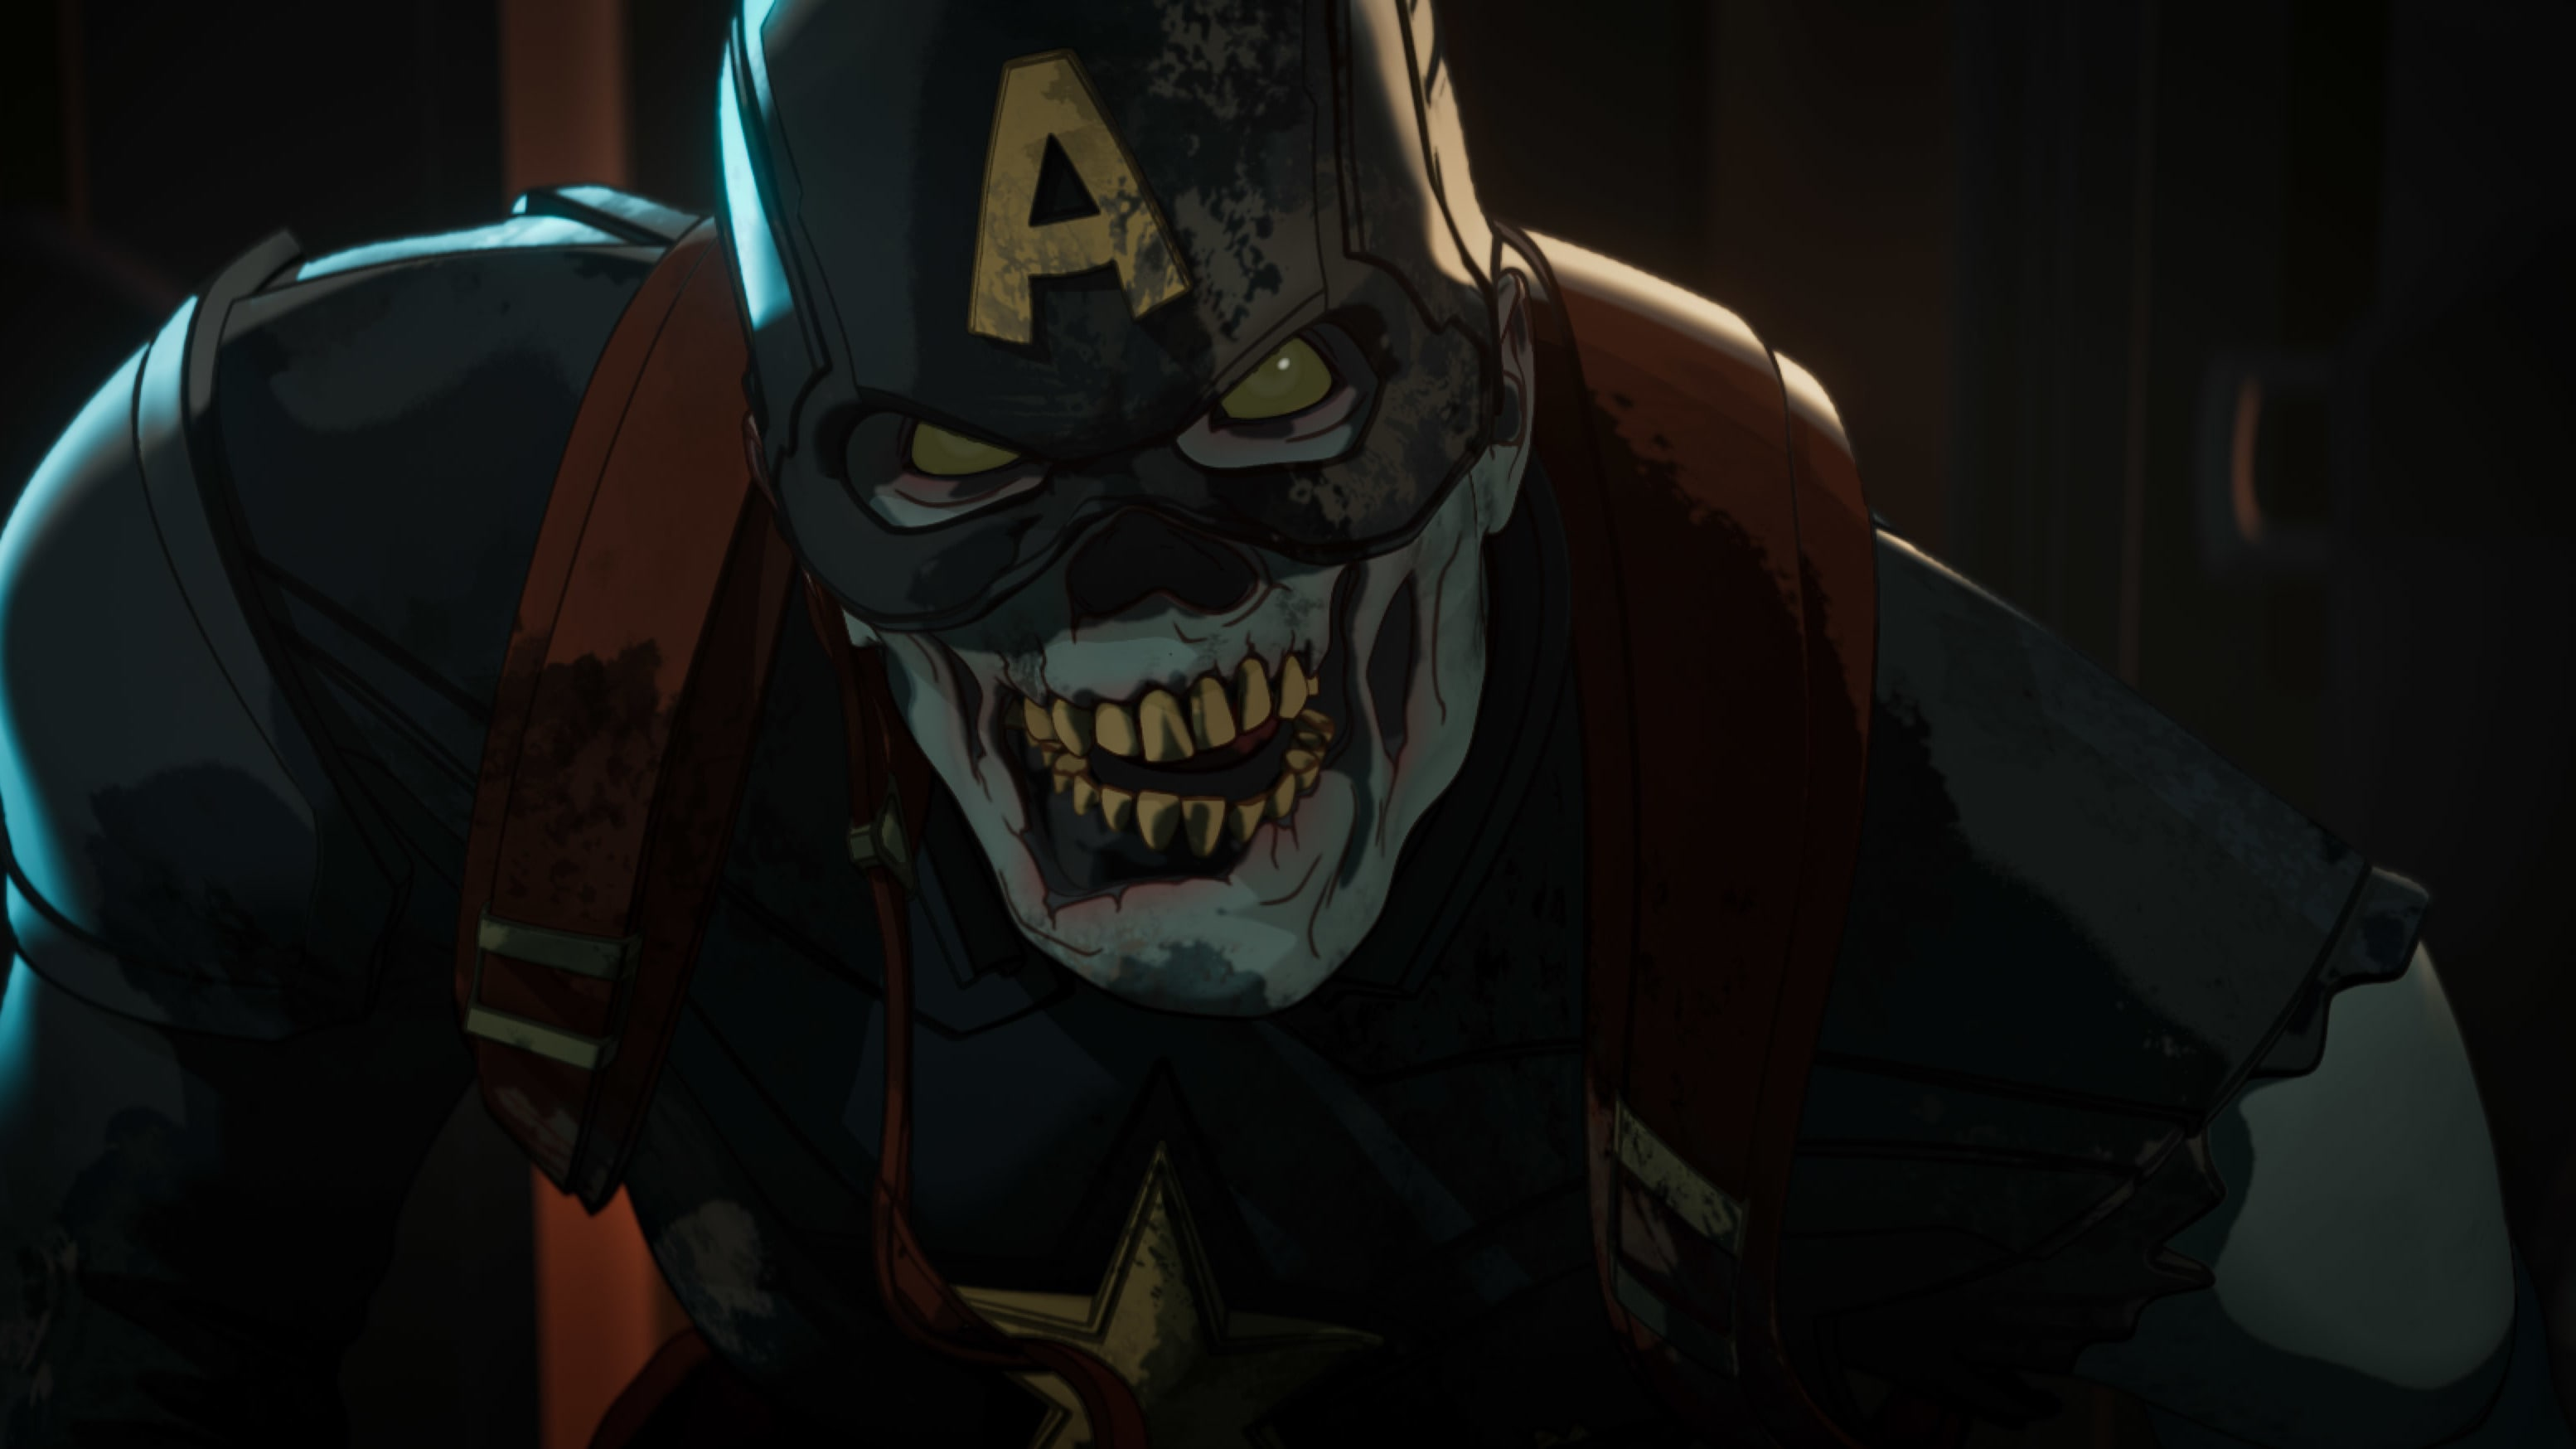 Zombie Captain America in Marvel Studios' WHAT IF…? exclusively on Disney+. ©Marvel Studios 2021. All Rights Reserved.